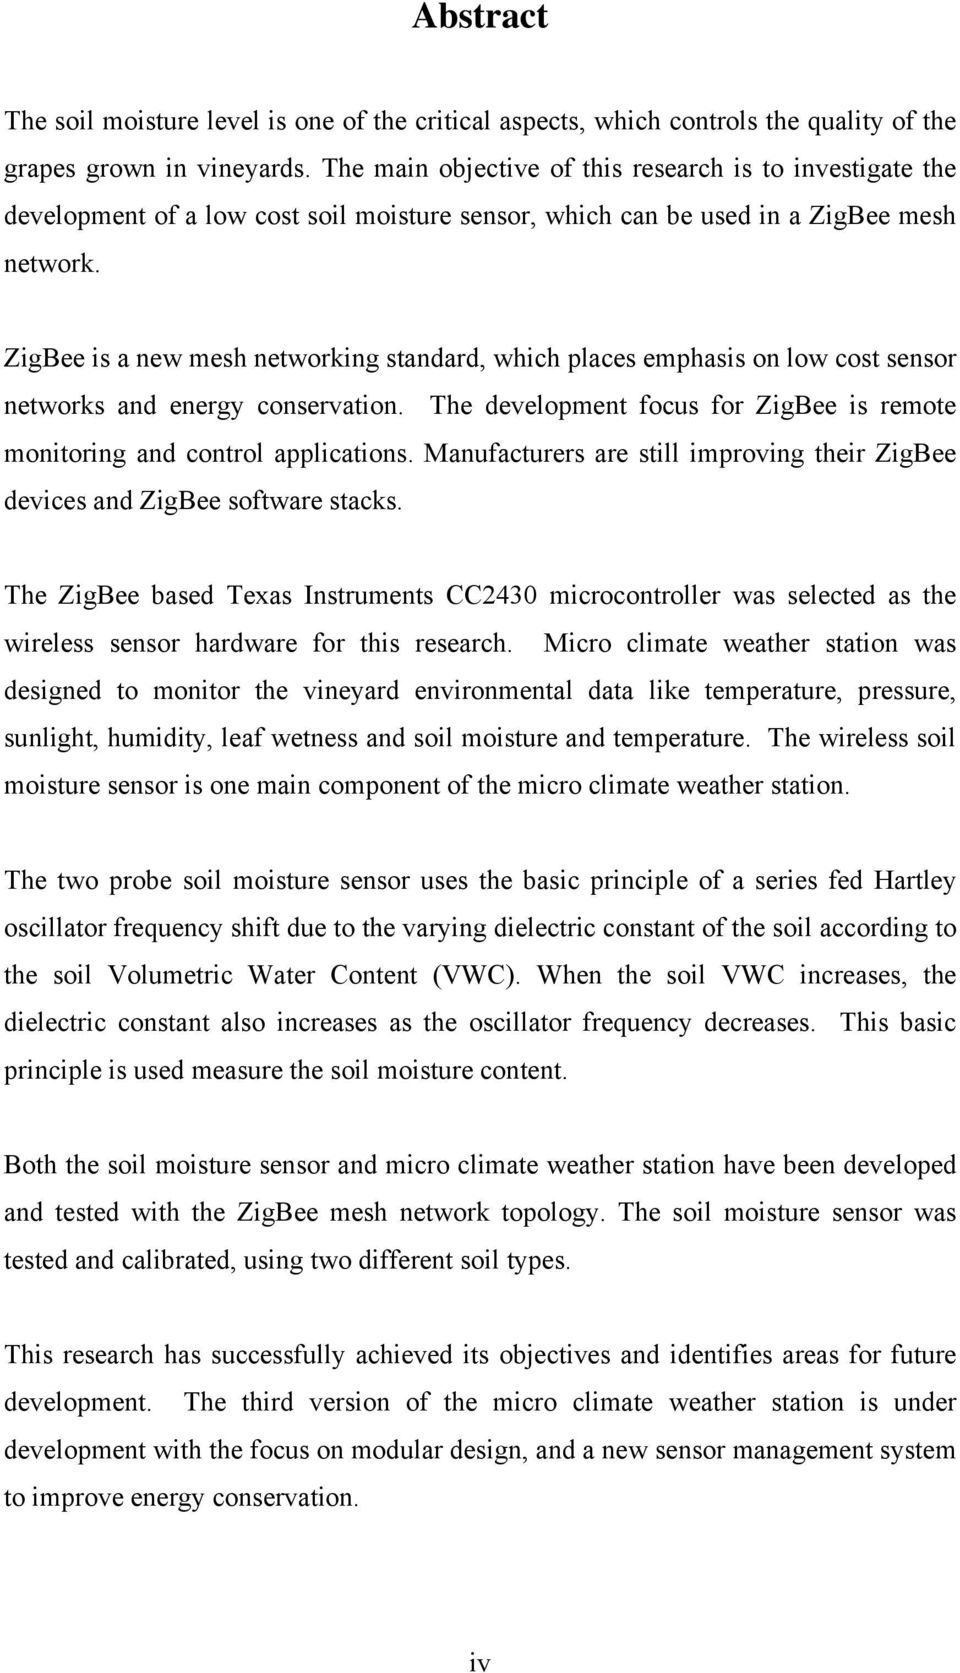 Zigbee Wireless Soil Moisture Sensor Design For Vineyard Management Circuits Plant Tester Circuit Alarm Is A New Mesh Networking Standard Which Places Emphasis On Low Cost Networks